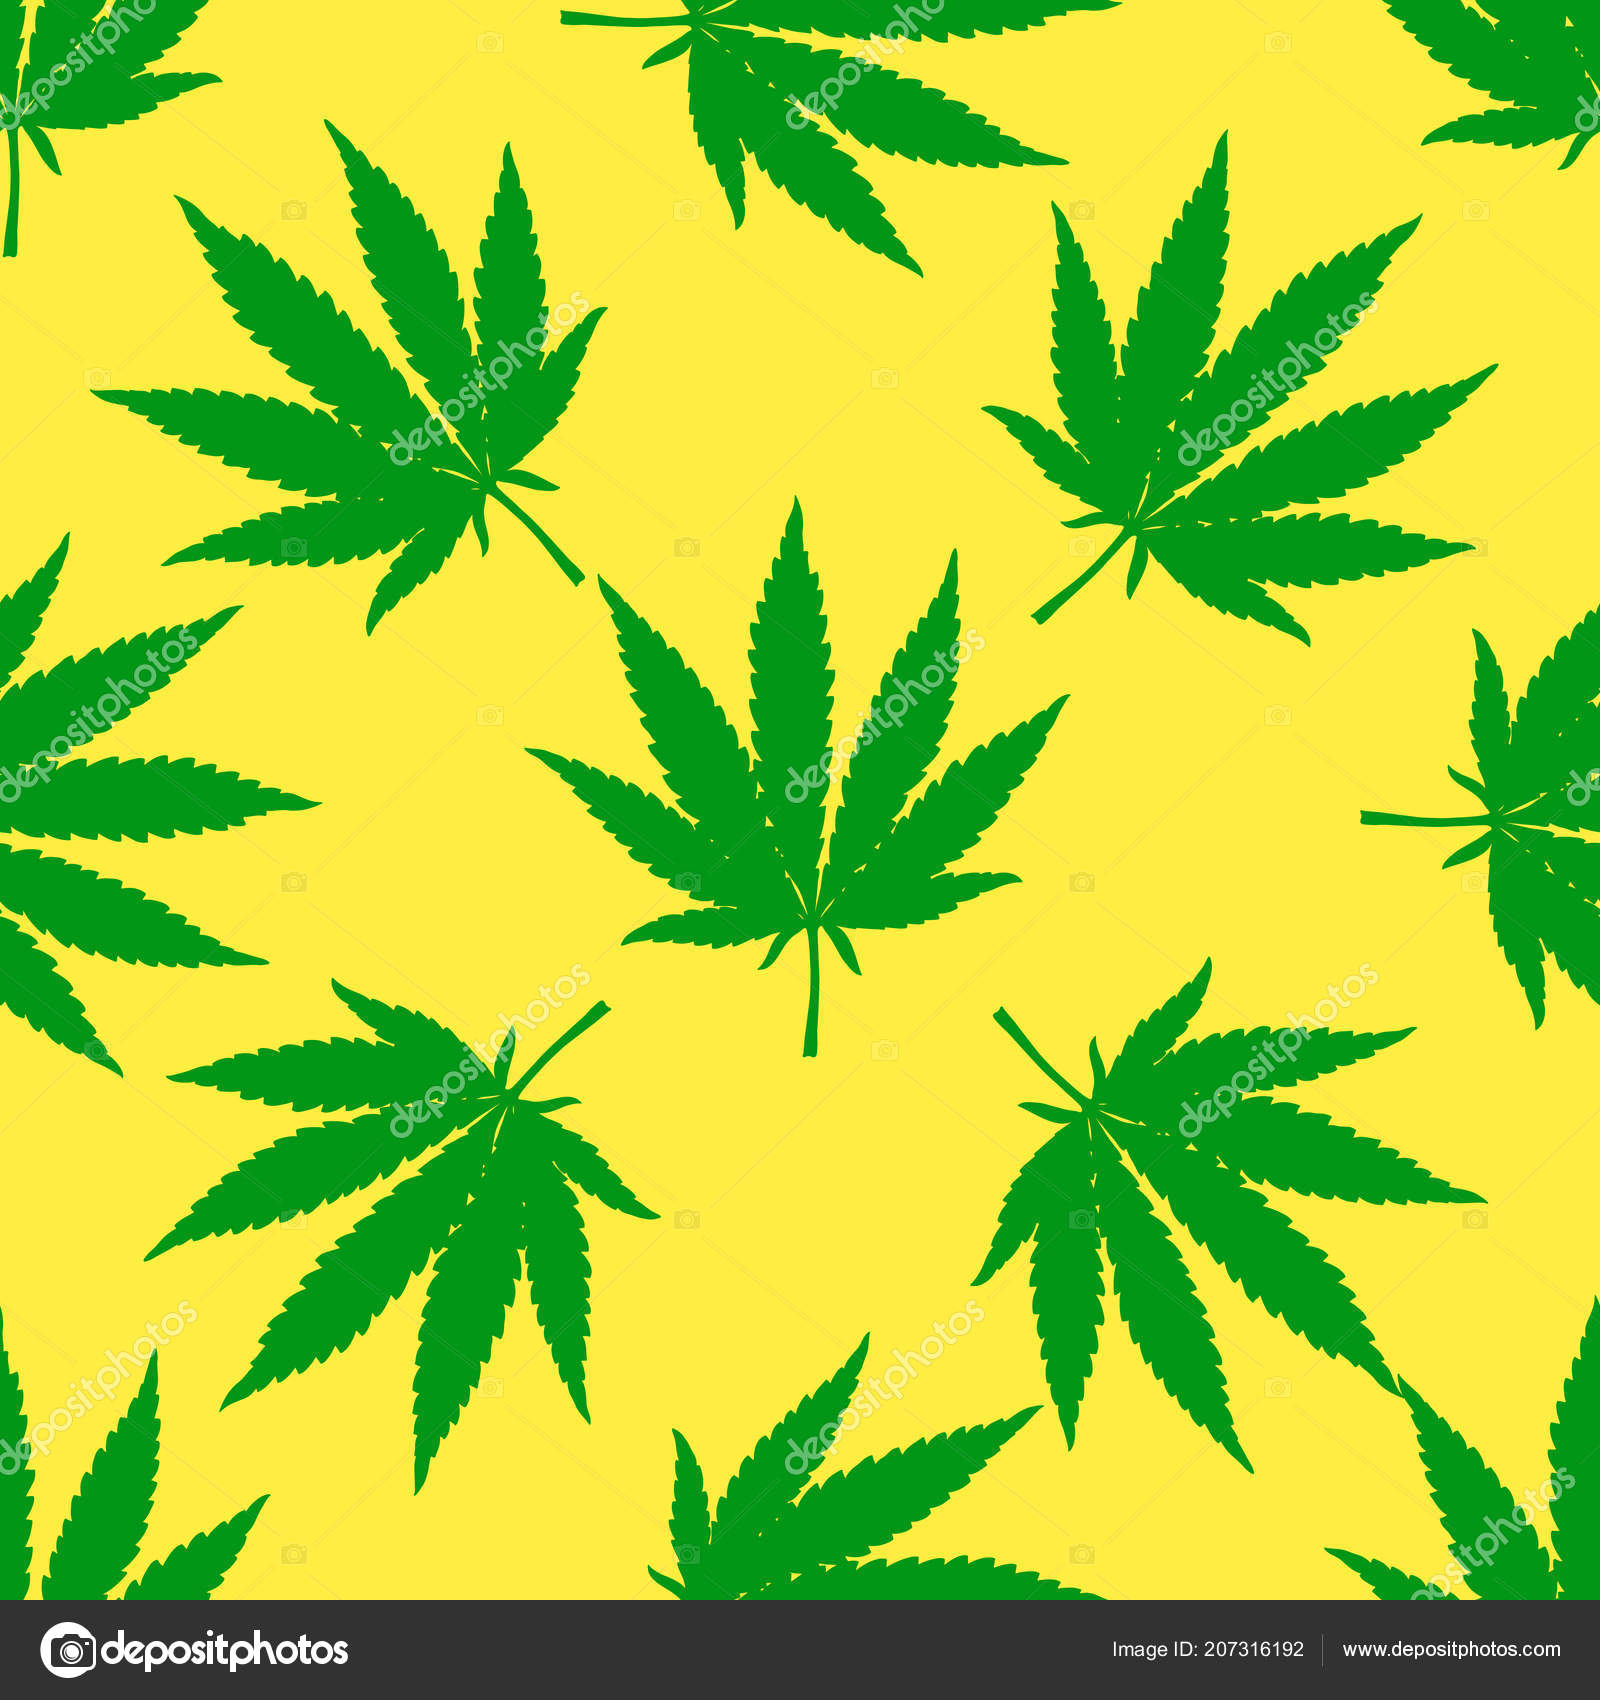 marijuana leaf seamless pattern hand drawn narcotic cannabis background hemp stock vector c de kay 207316192 depositphotos